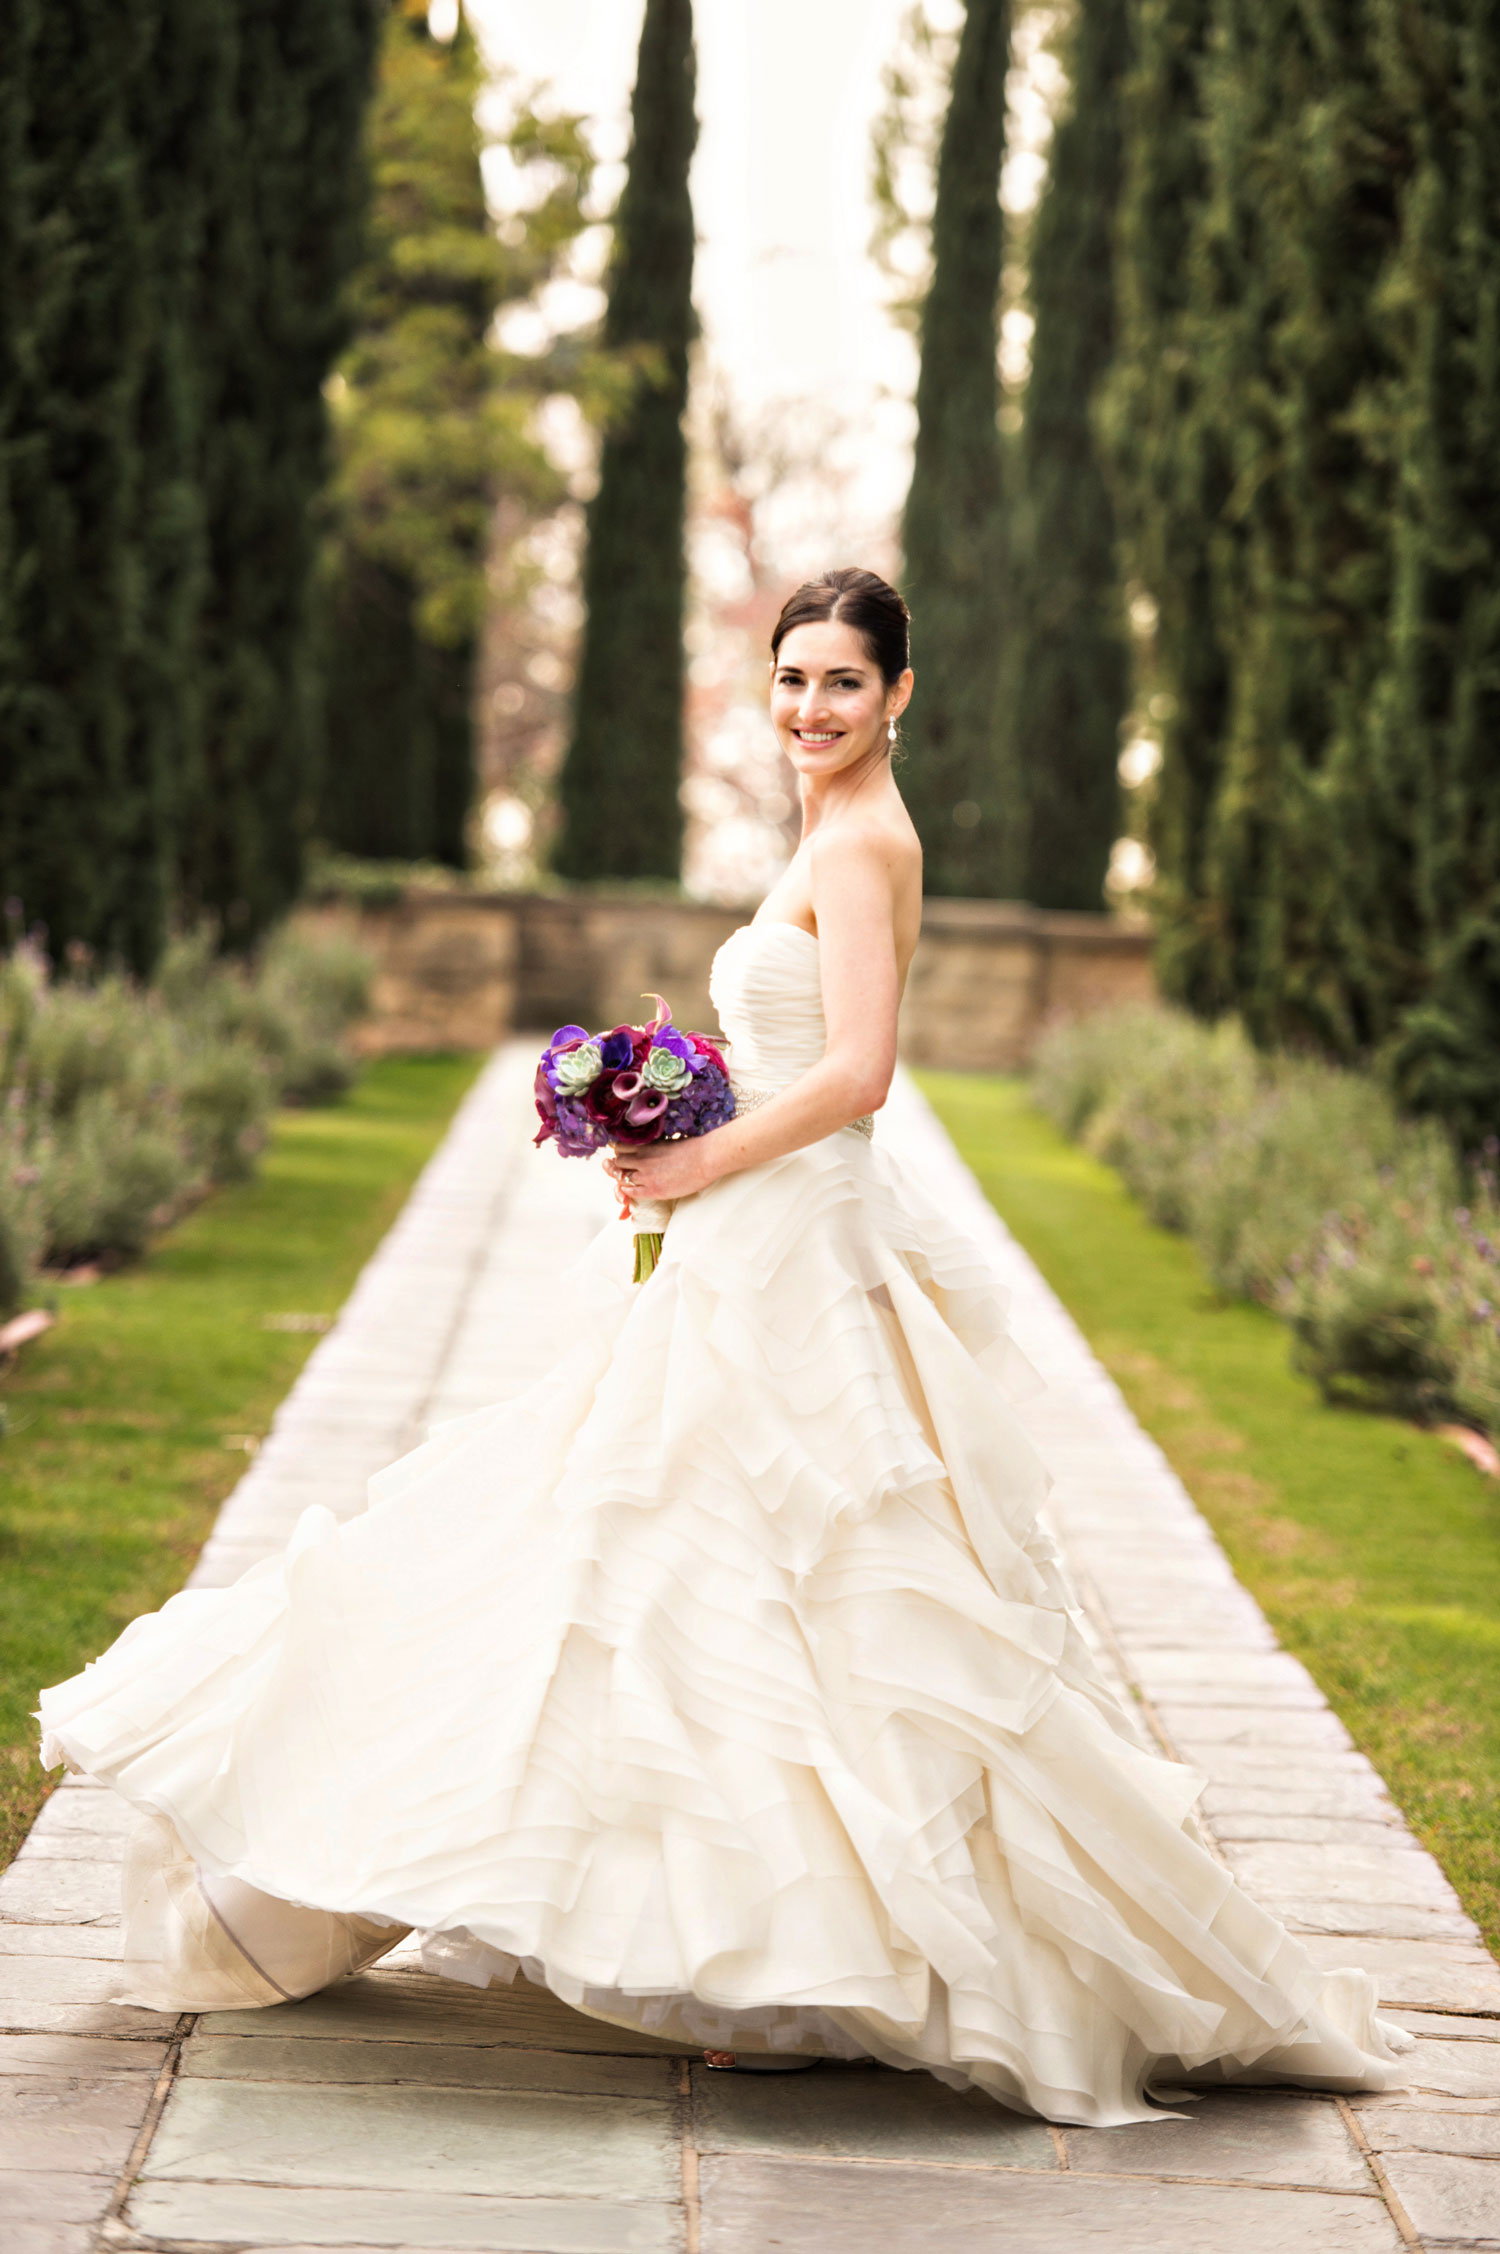 Laurie Bailey Photography bridal portrait bride in ball gown photo ideas